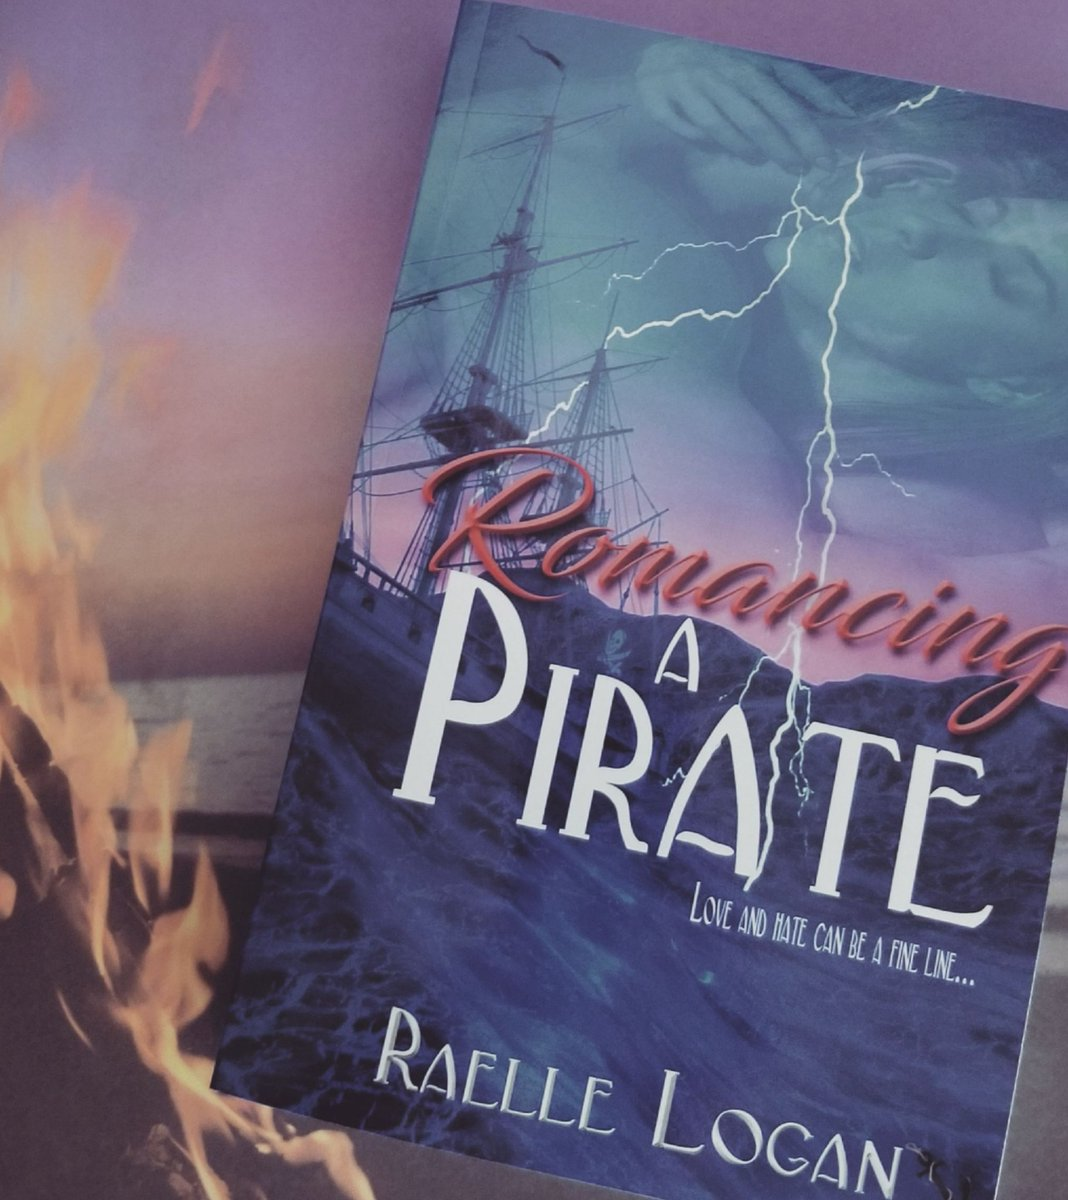 @publishing_wise Love a Scorching Hot Pirate, a Feisty Beauty, Steamy Romance, a Mysterious Shipwrecked Treasure, Sinister Villains and Dangerous High Seas Adventure?  https://t.co/owXTIqwym7  #book #books #romance #amreading #amwriting #writingcommmunity #writing #writerslift #BlackFriday https://t.co/xjGCsz47O8